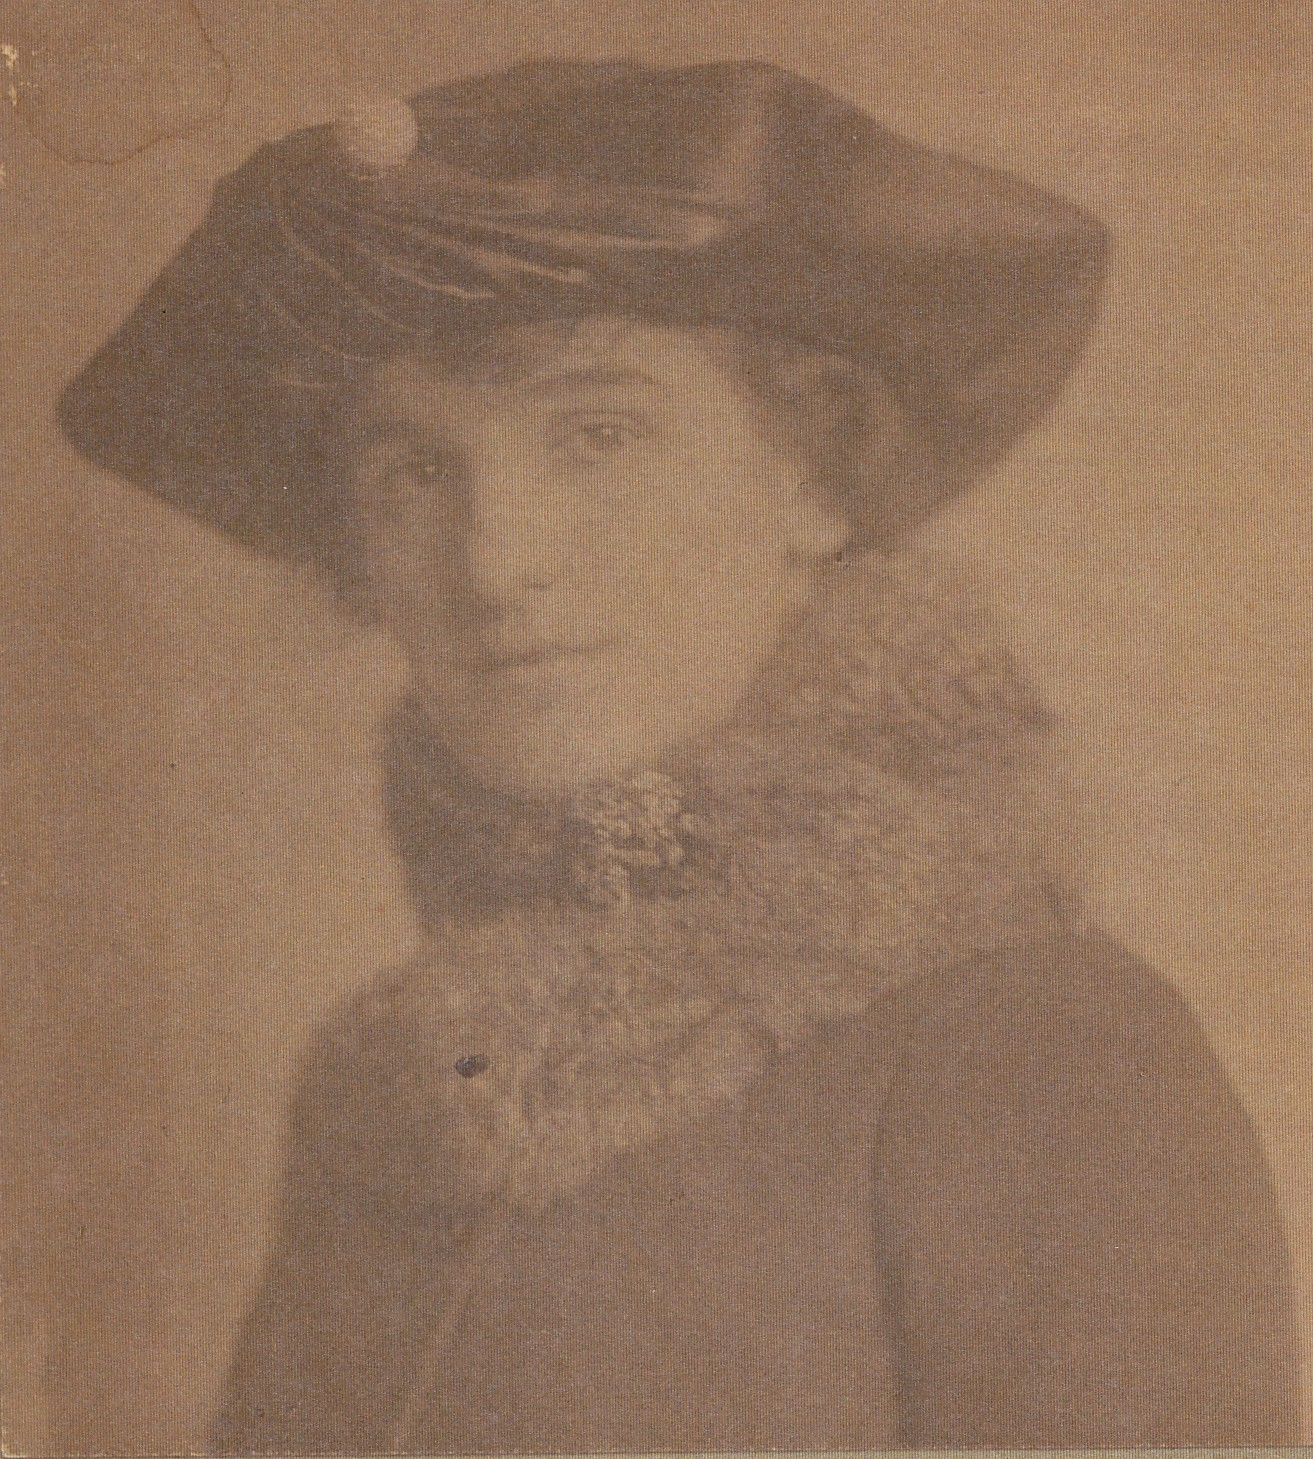 Elisabeth in a hat and coat looking at the camera.